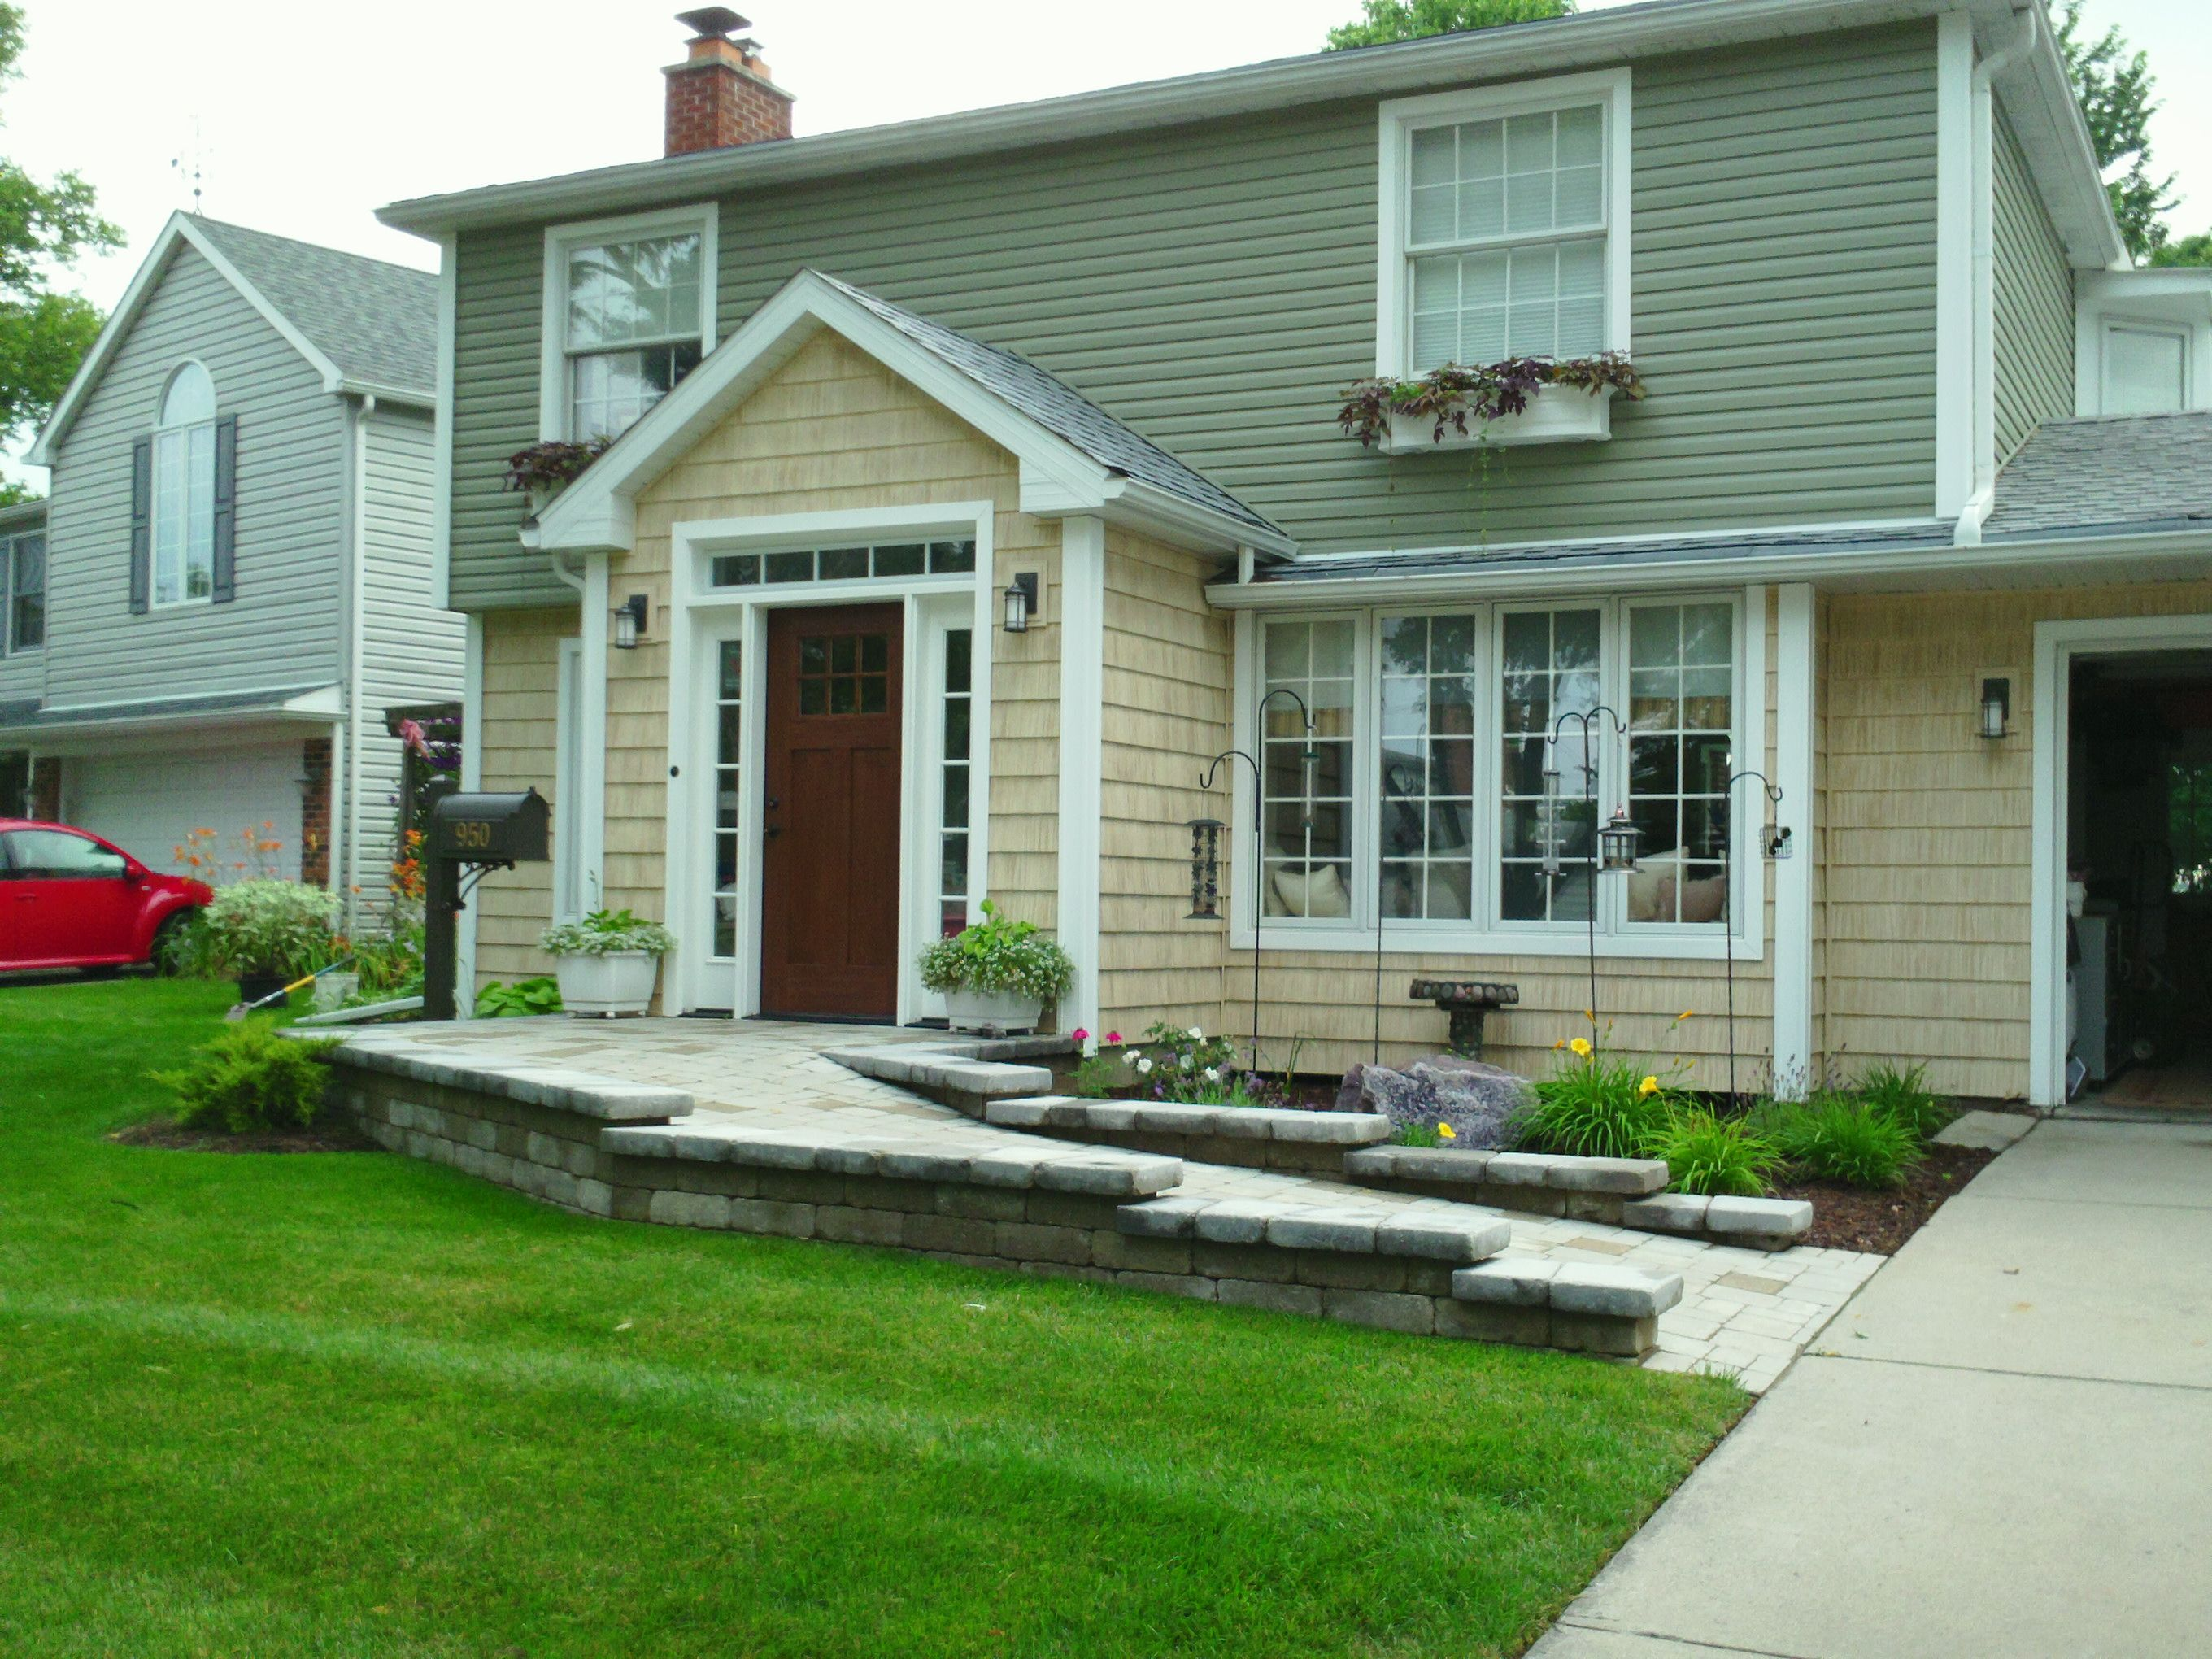 Brick Paver Ramp For A More Accessible Entrance Way